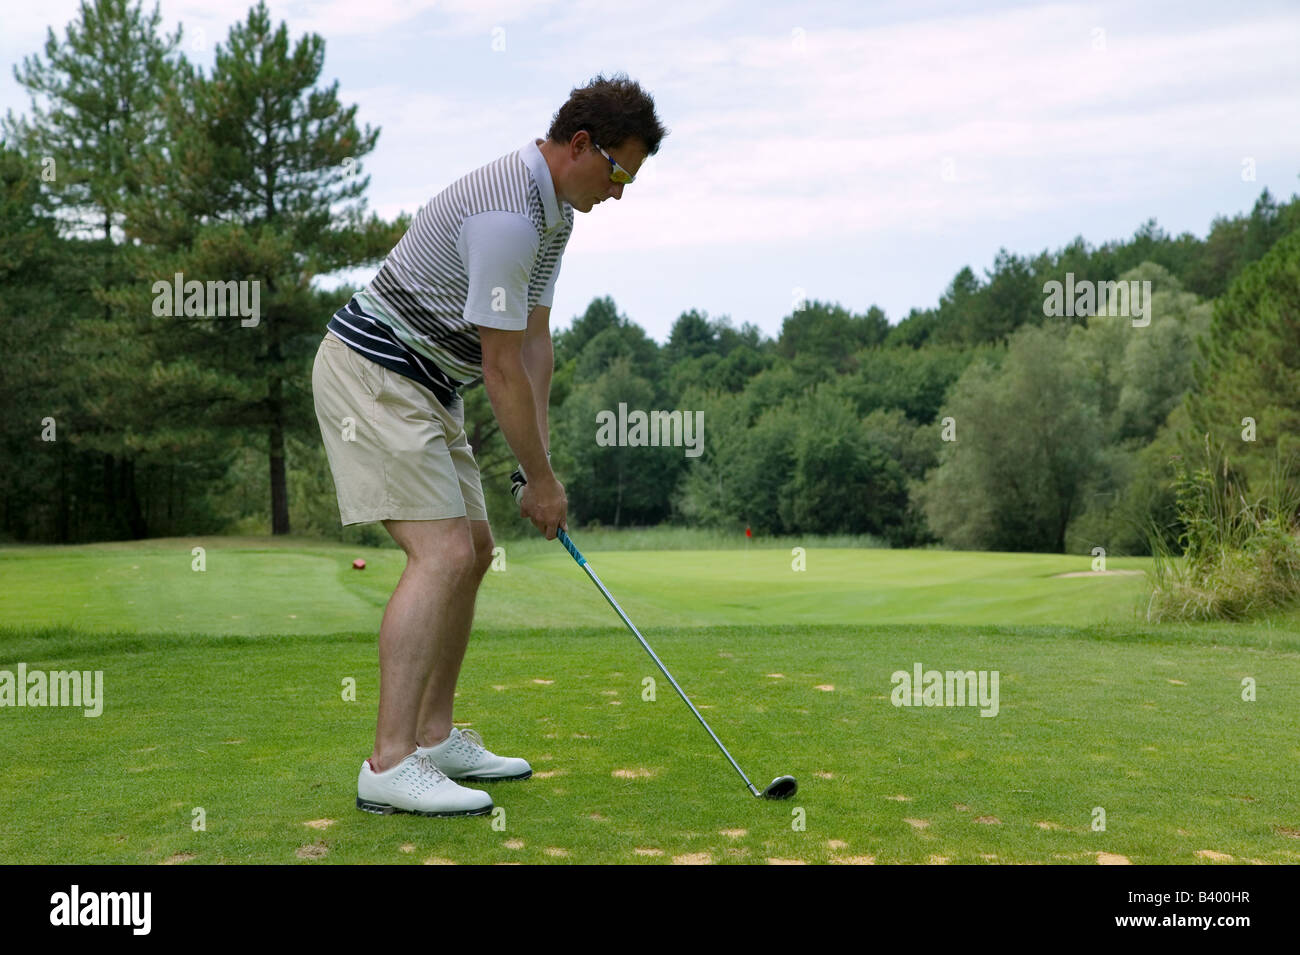 Golfer addressing the ball as he is about to tee off with an iron on a short par three - Stock Image